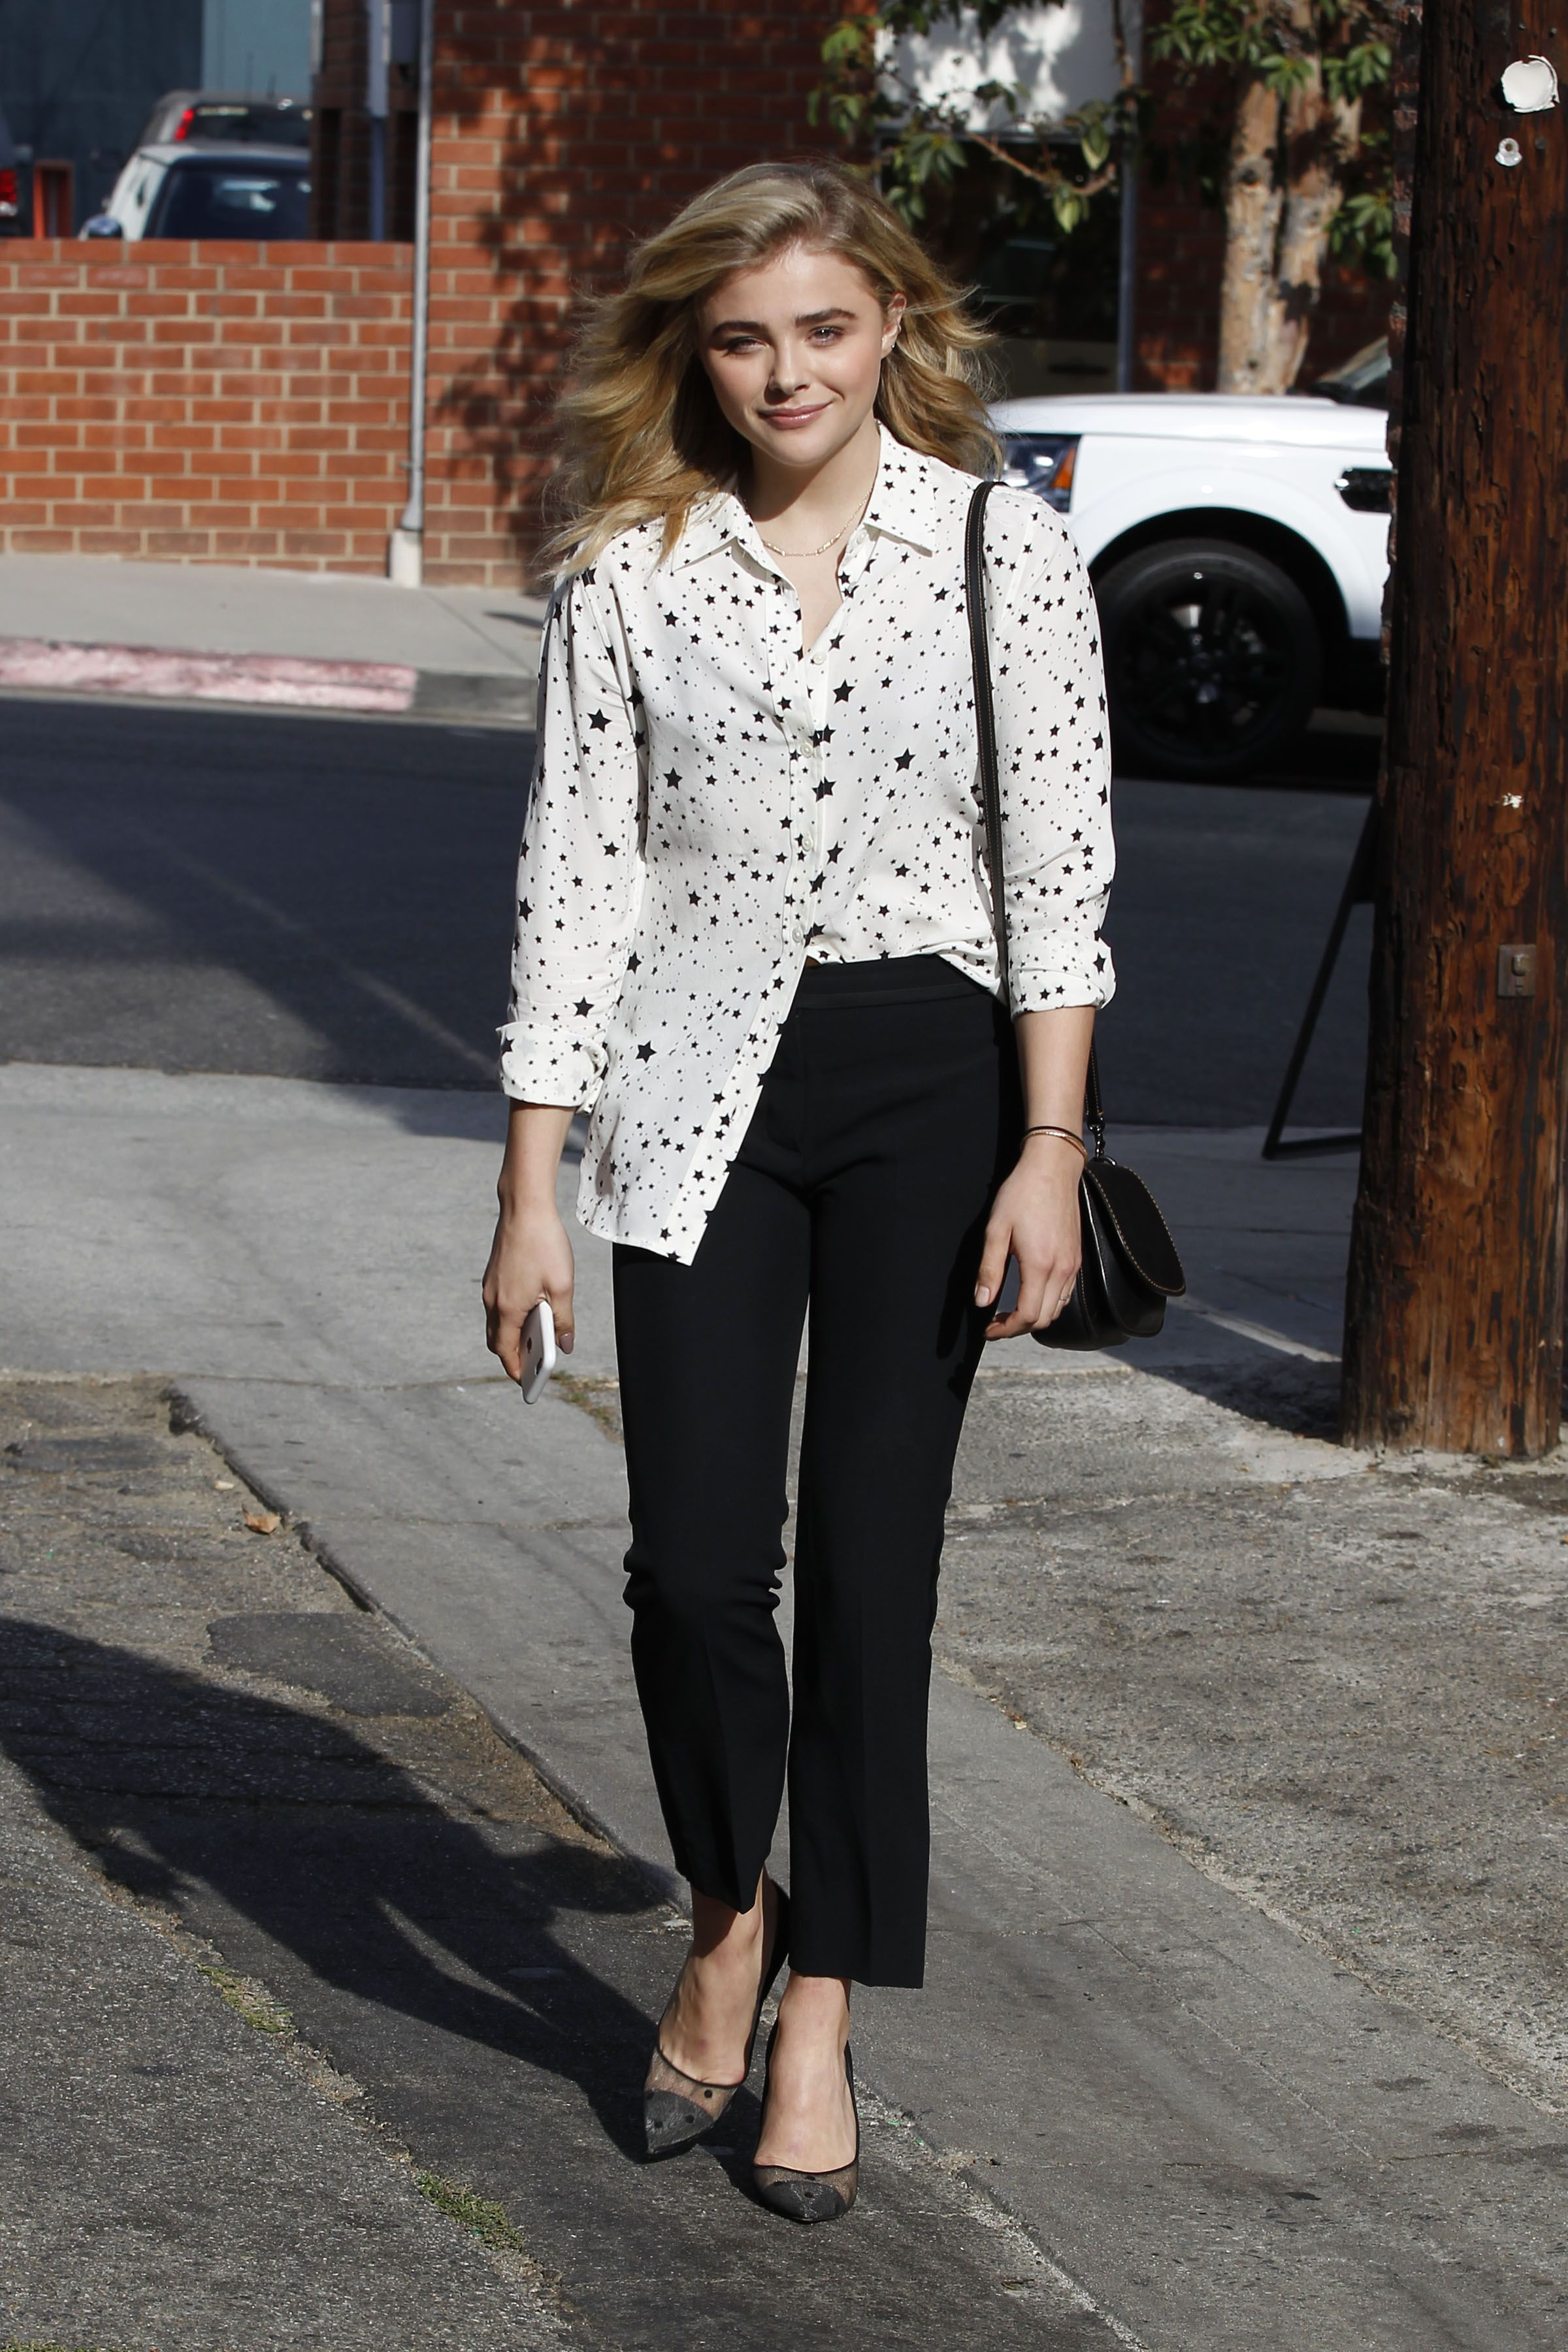 ca1054f4227 Chloe Moretz - Spotted leaving Clementine Bakery in Los Angeles 10 13 16